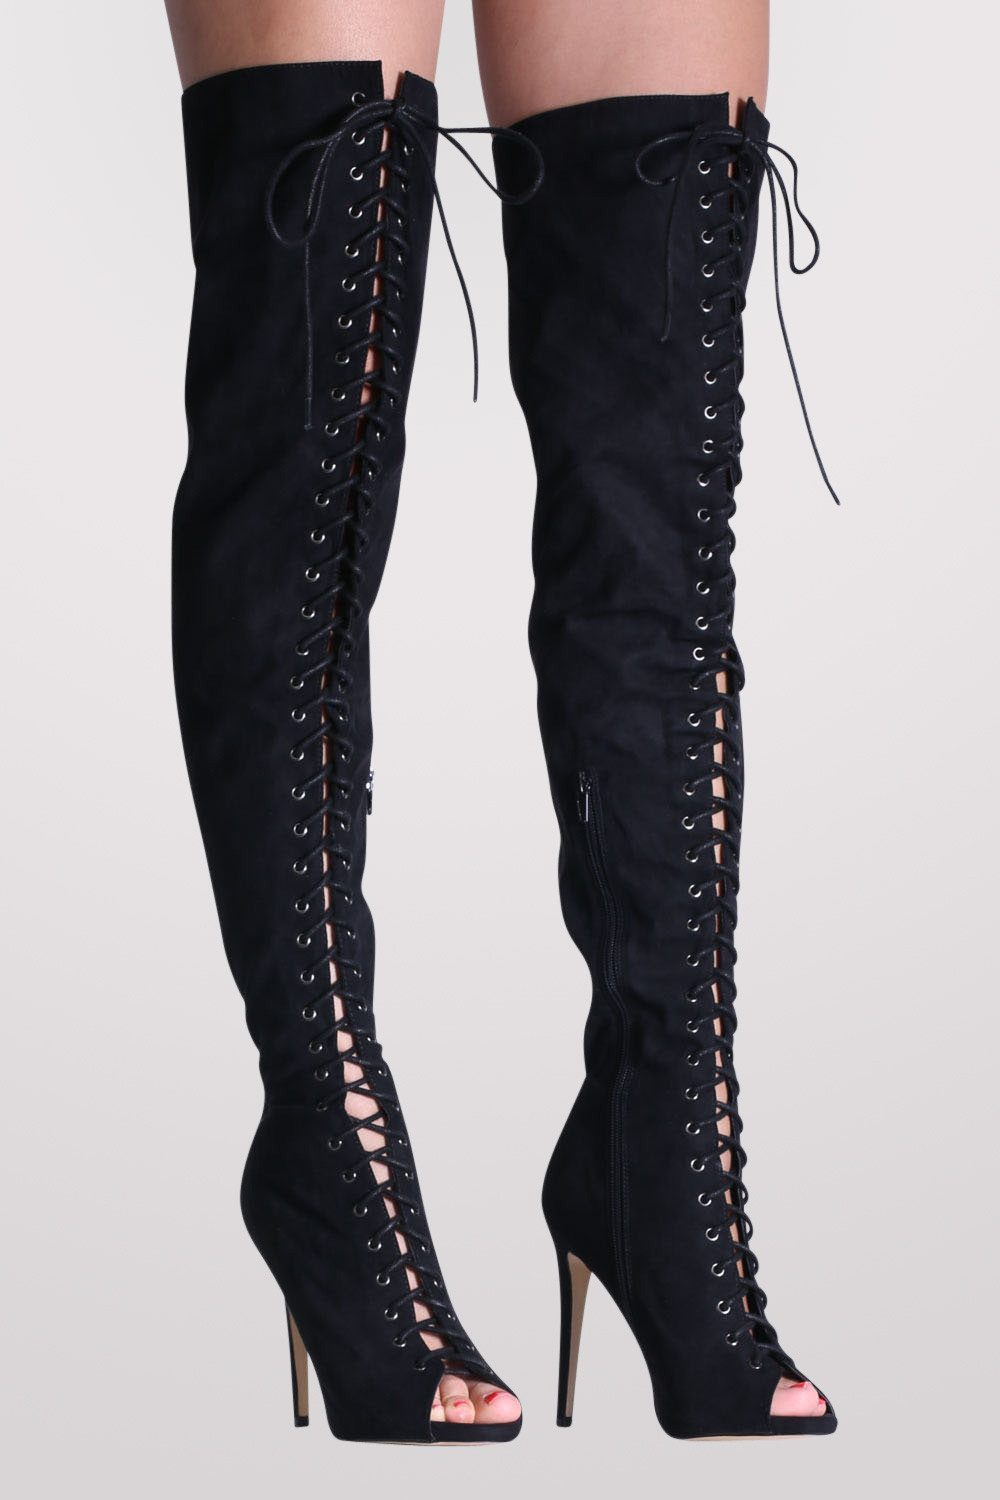 Faux Suede Lace Up Over The Knee Open Toe High Heel Boots in Black 0